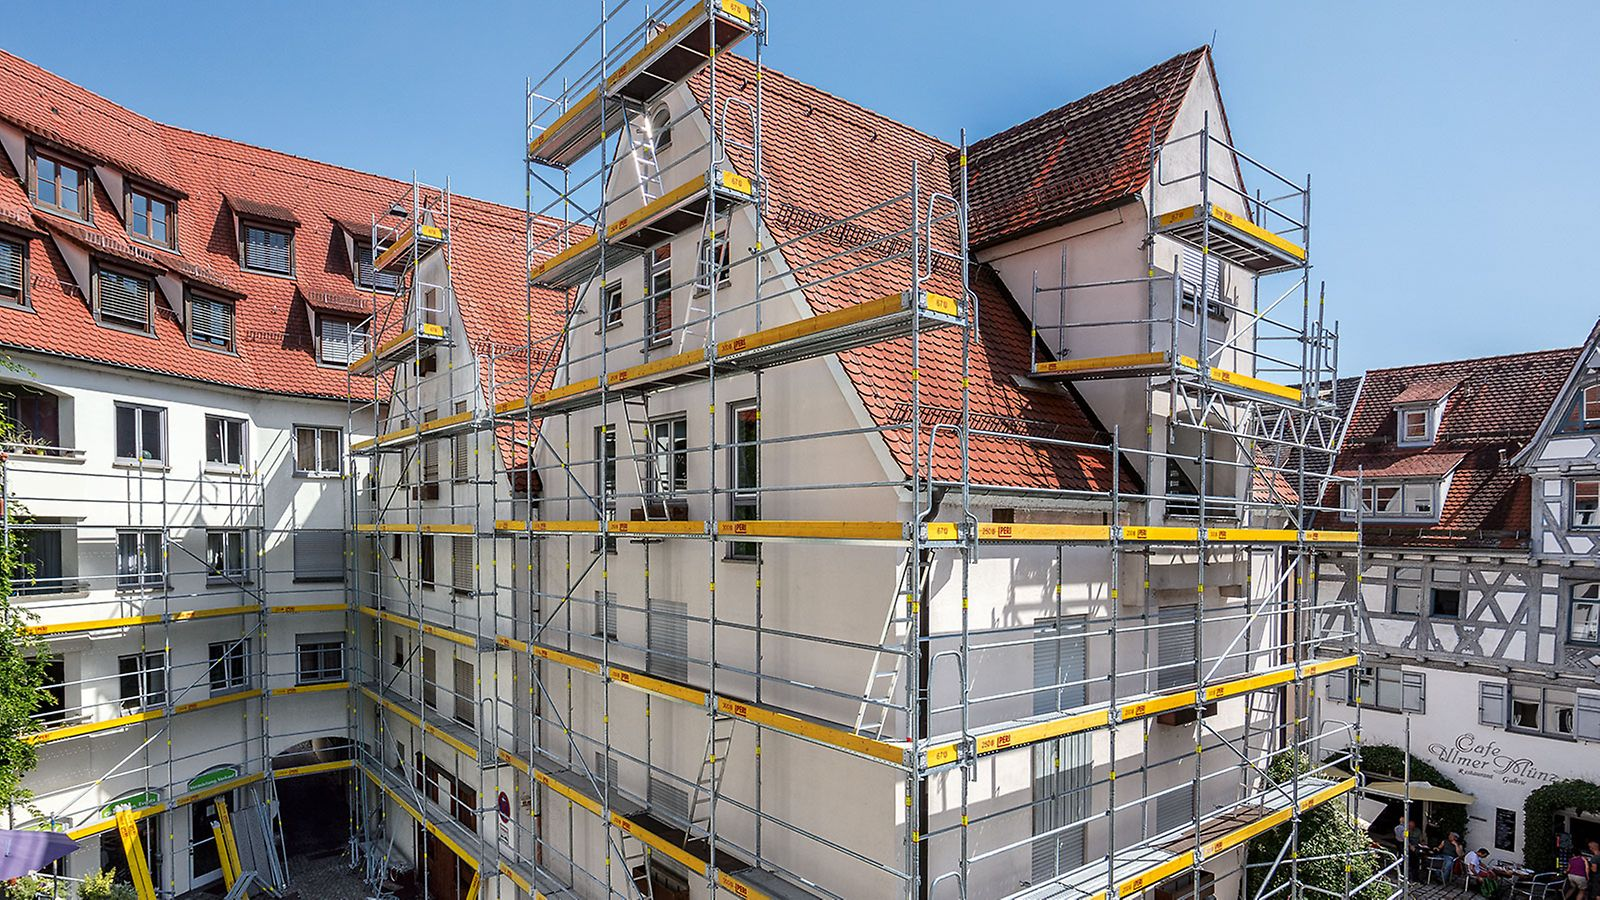 PERI UP Easy was unveiled for the first time at bauma 2016. Since then, the fast and safe facade scaffolding has firmly established itself in the market while the addition of various new components make the system even more versatile.